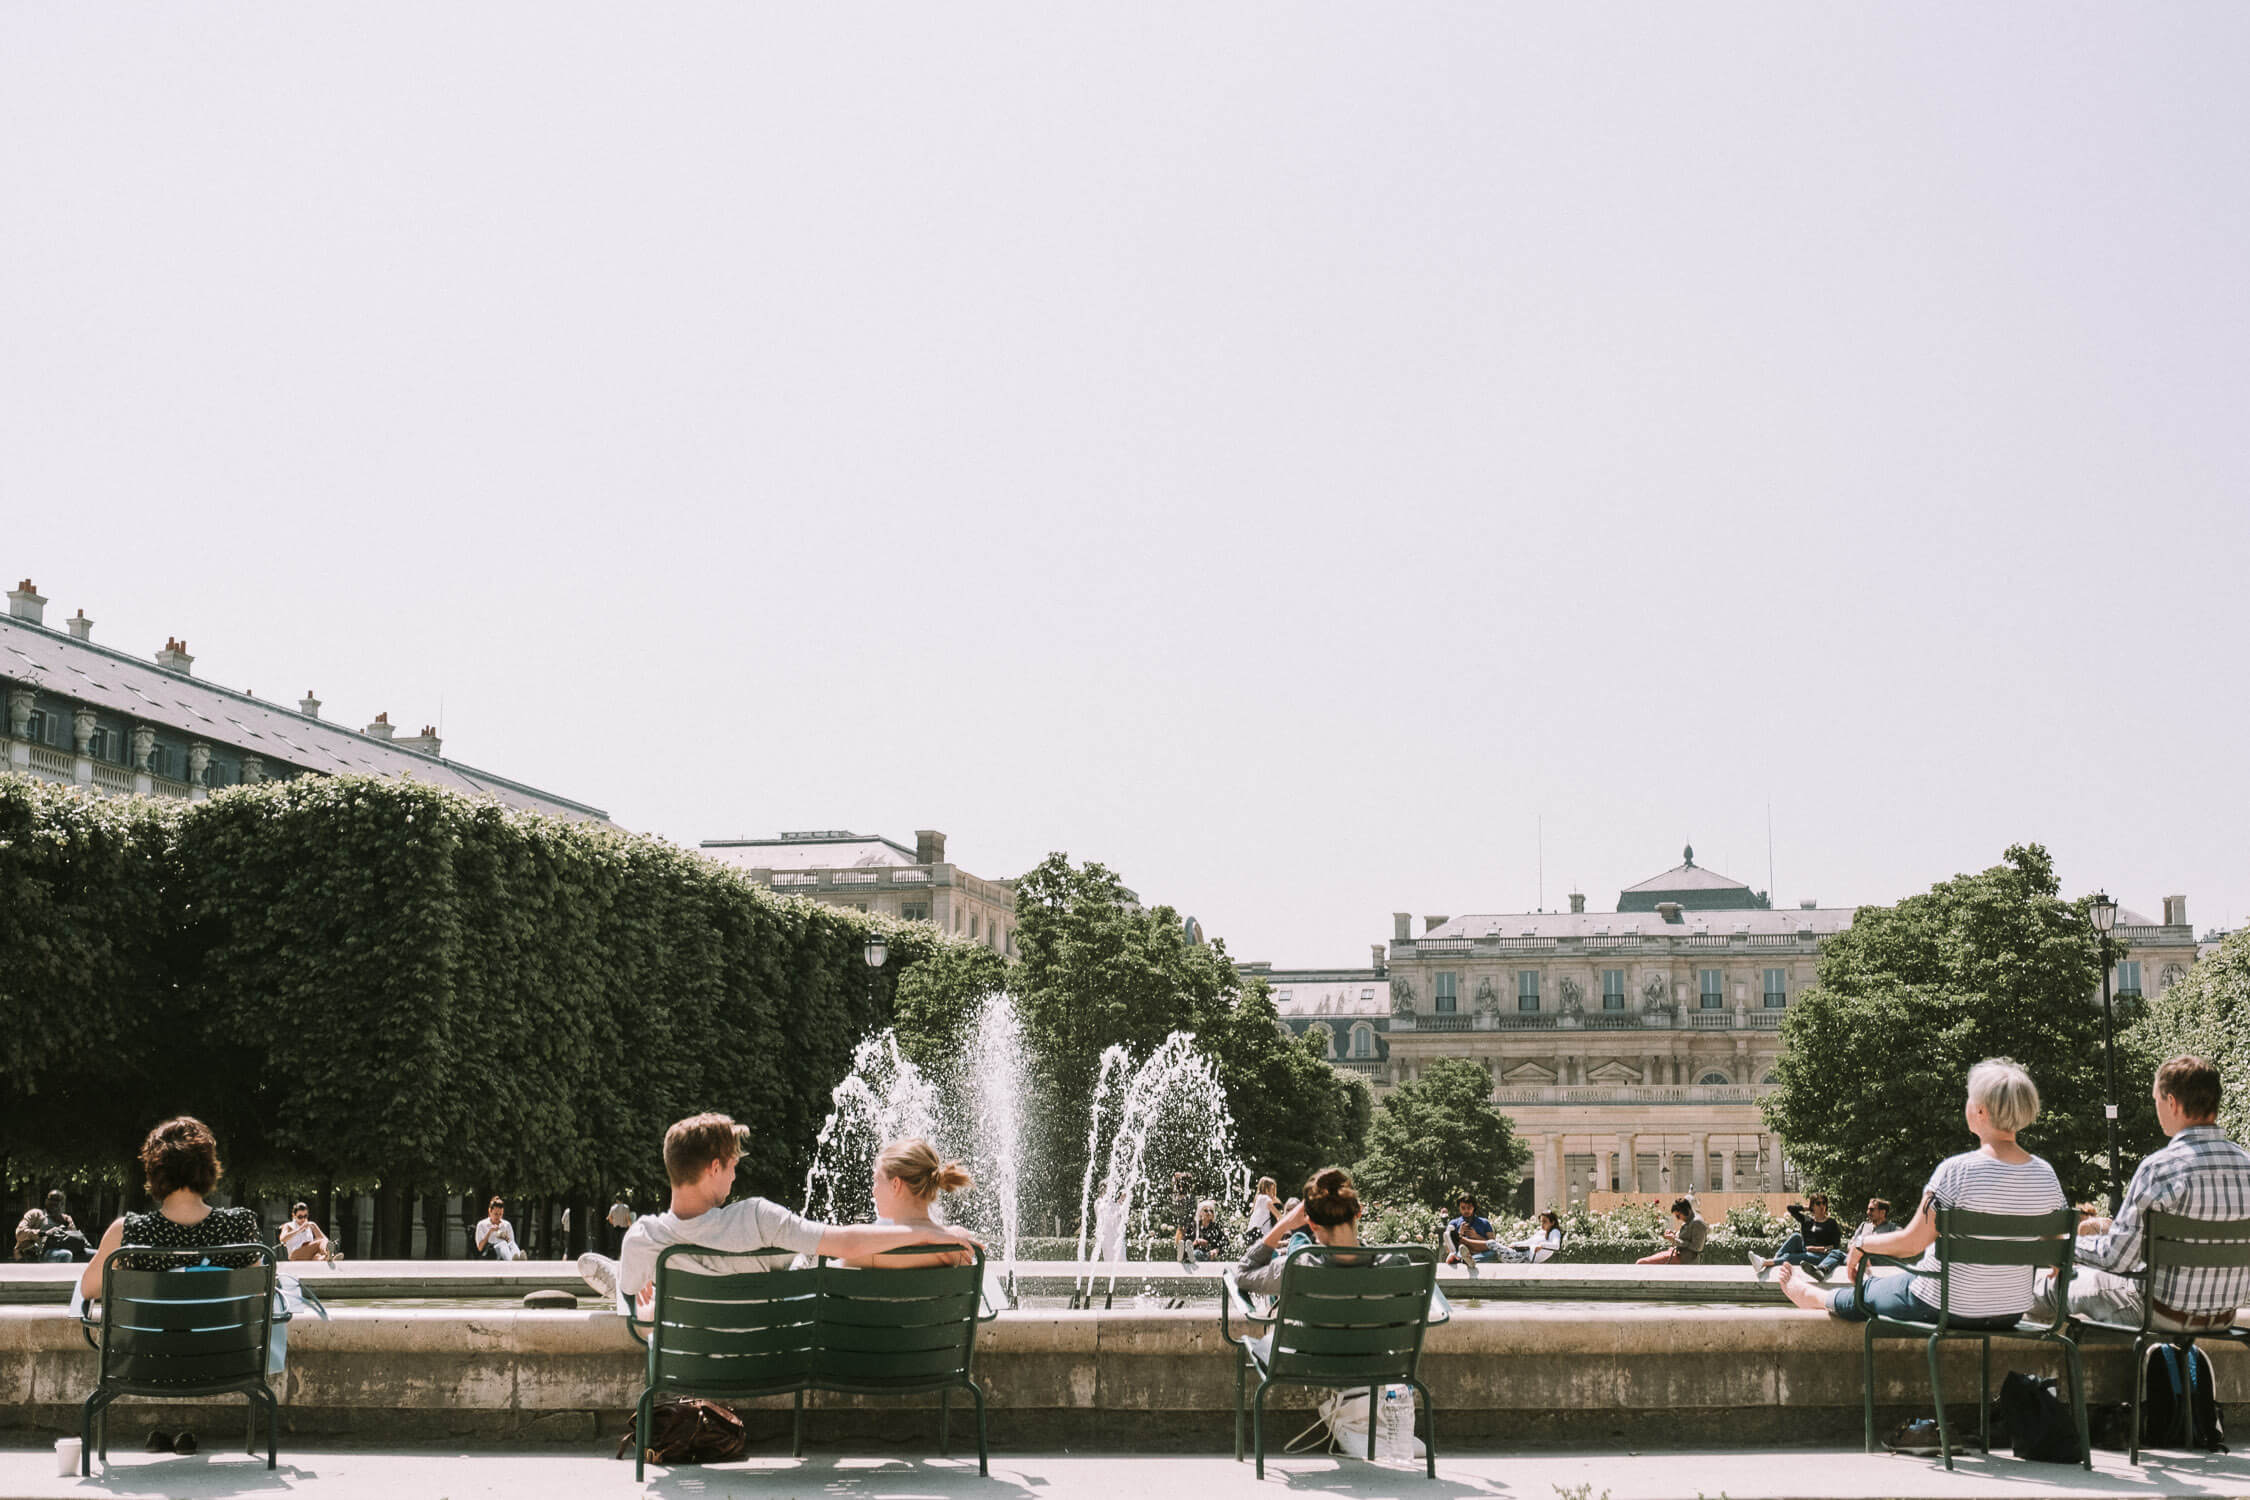 Palais Royal in Paris France